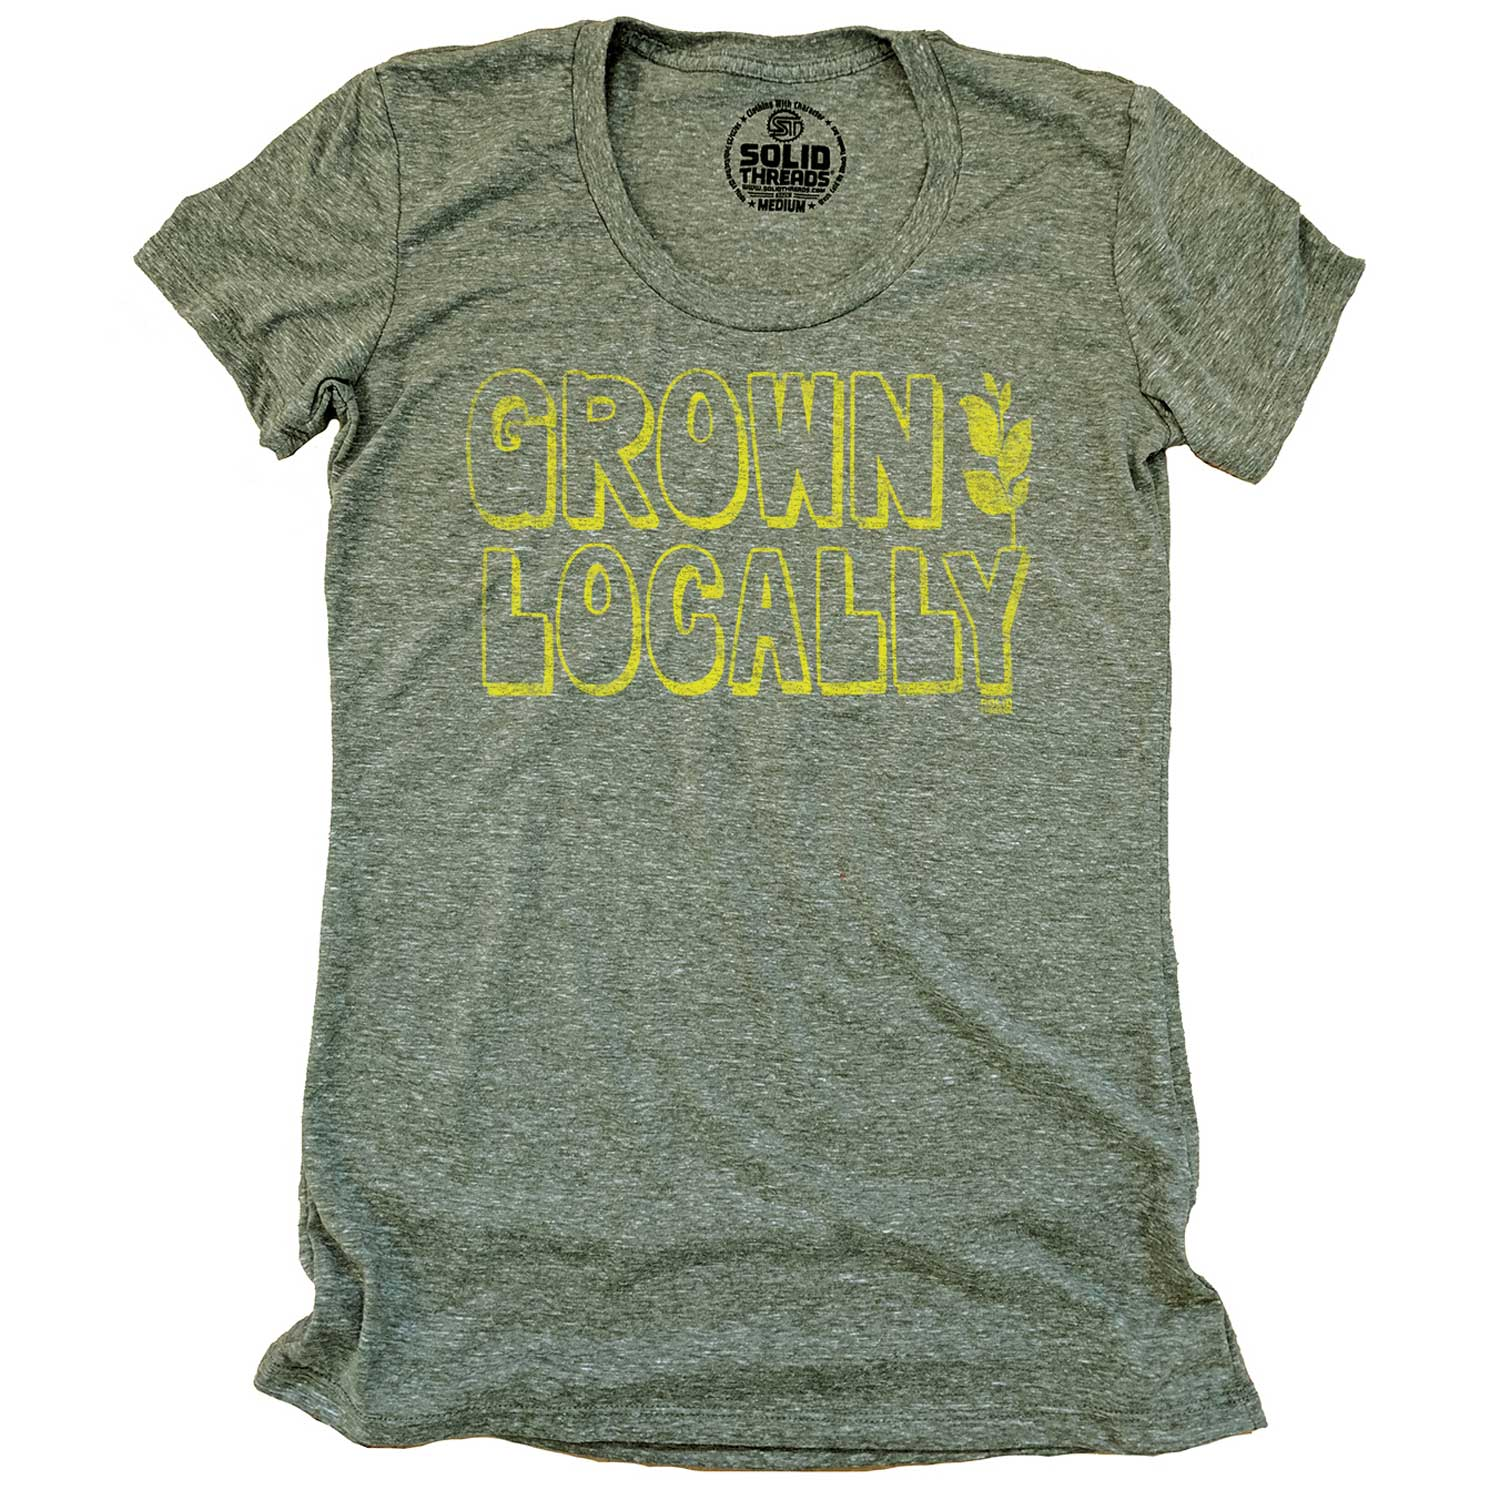 Women's Grown Locally Vintage T-shirt | SOLID THREADS